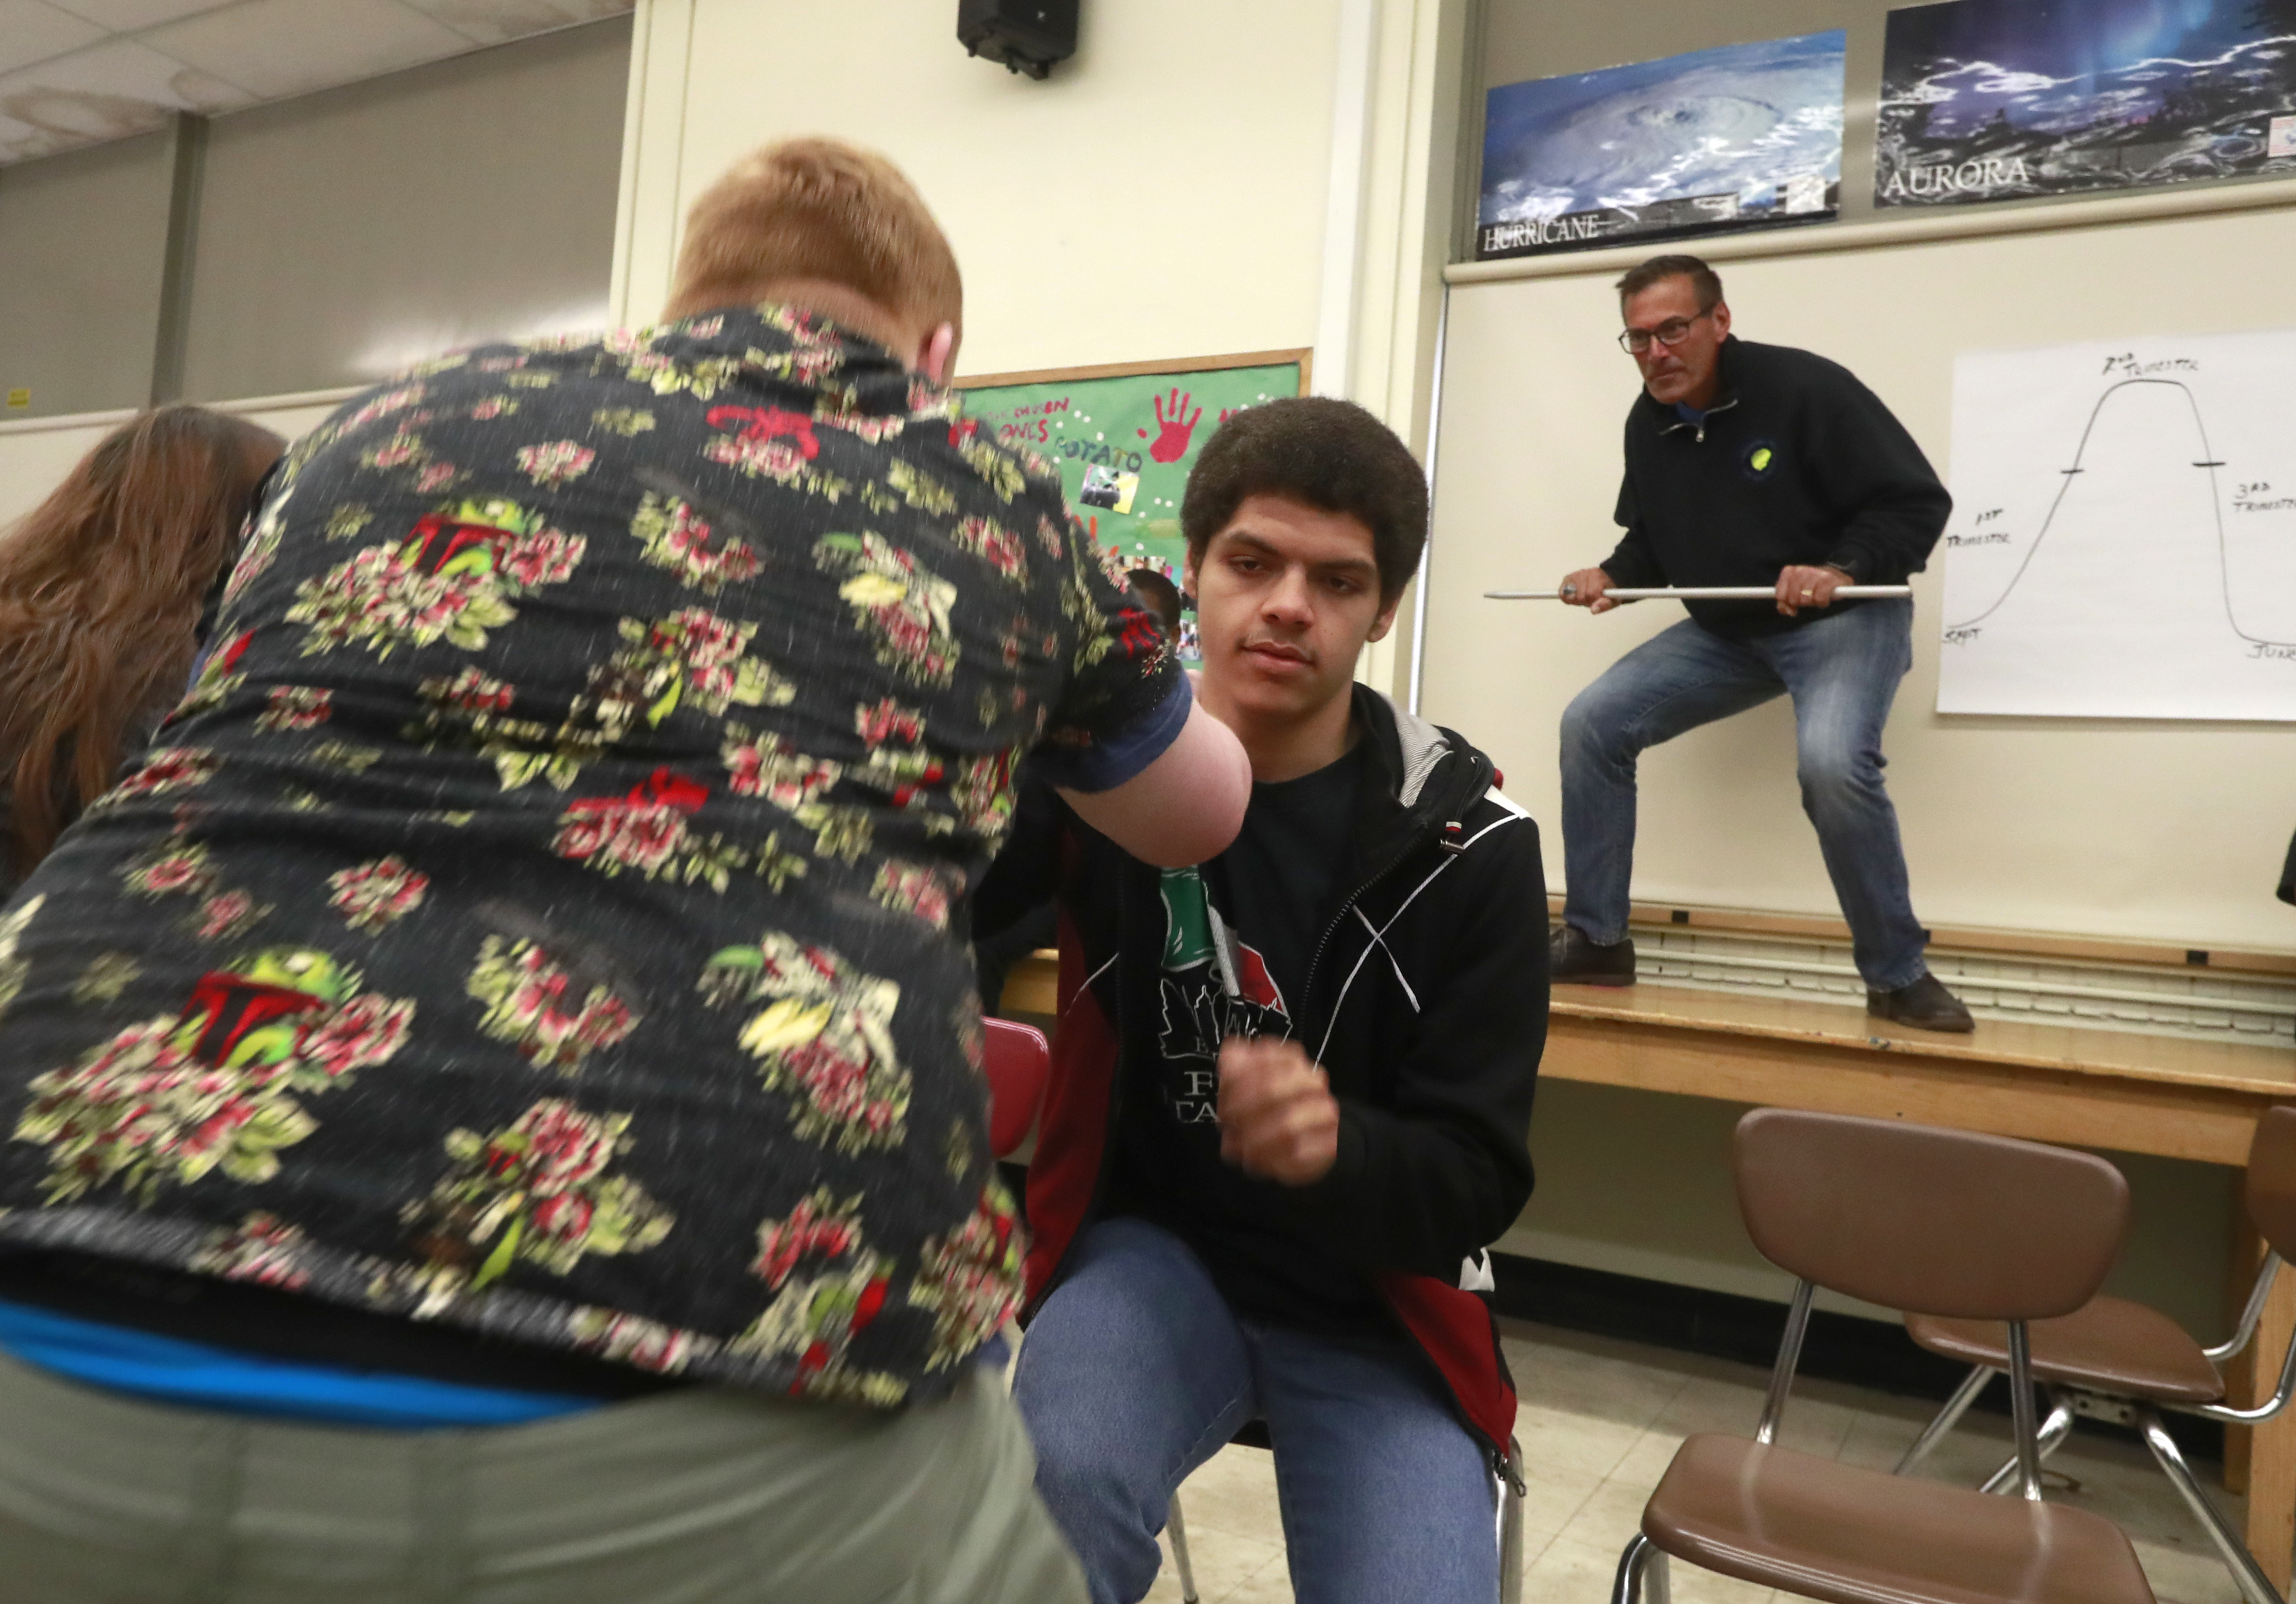 Teacher Matt Chimera, on right, runs the 'Pick Me Up' session as Sean Menk, left, and Richard Pates participate in this free-form high school for at-risk youth in the Kenmore-Town of Tonawanda School District at the Middle School in Kenmore, N.Y. on  Friday April 28, 2017. (John Hickey/Buffalo News)